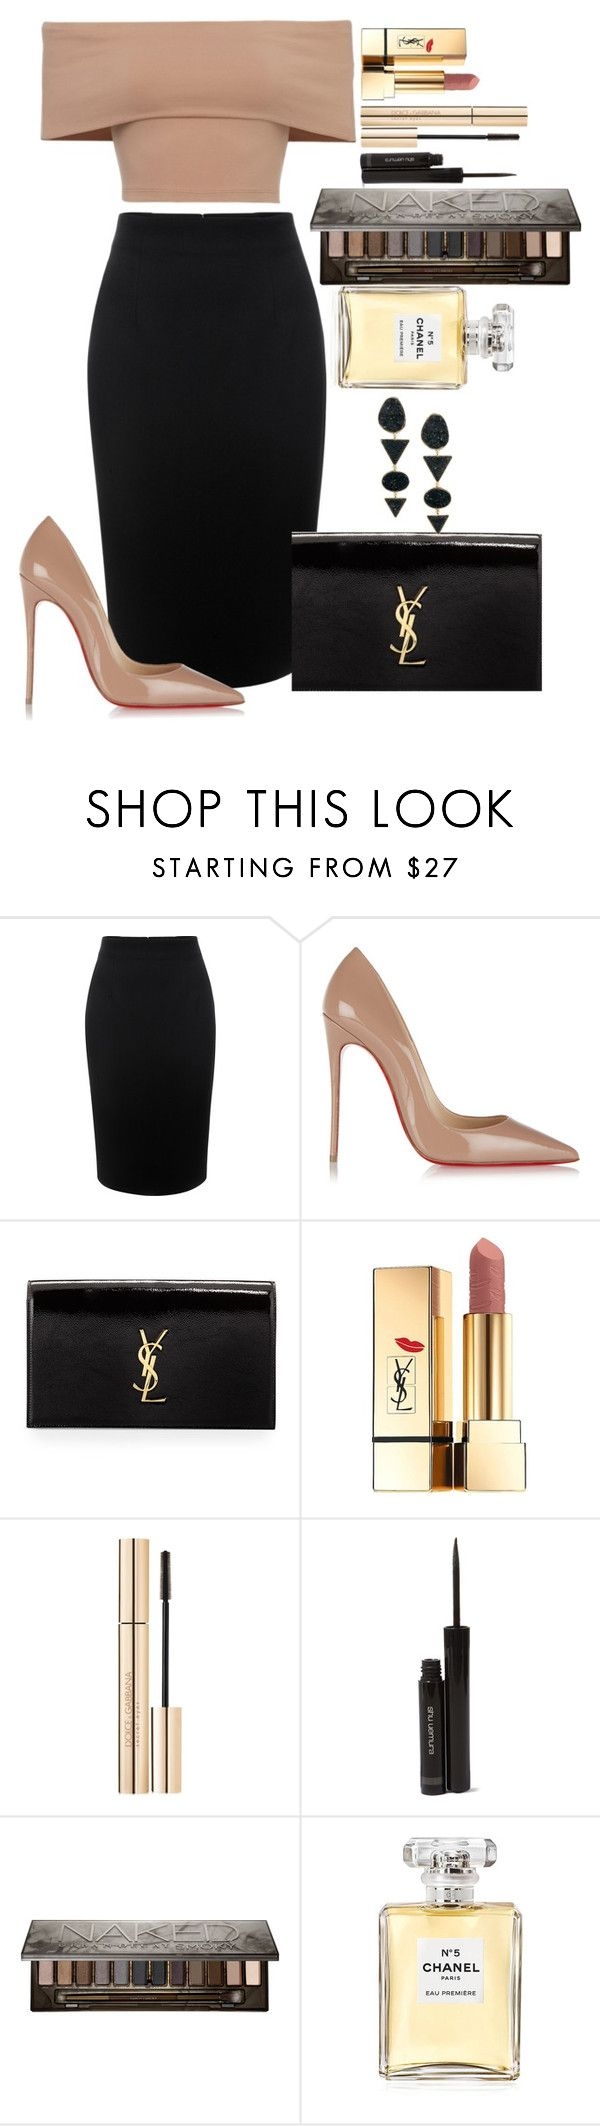 """Untitled #1276"" by fabianarveloc on Polyvore featuring Alexander McQueen, Christian Louboutin, Yves Saint Laurent, Dolce&Gabbana, shu uemura, Urban Decay, Chanel and H&M"